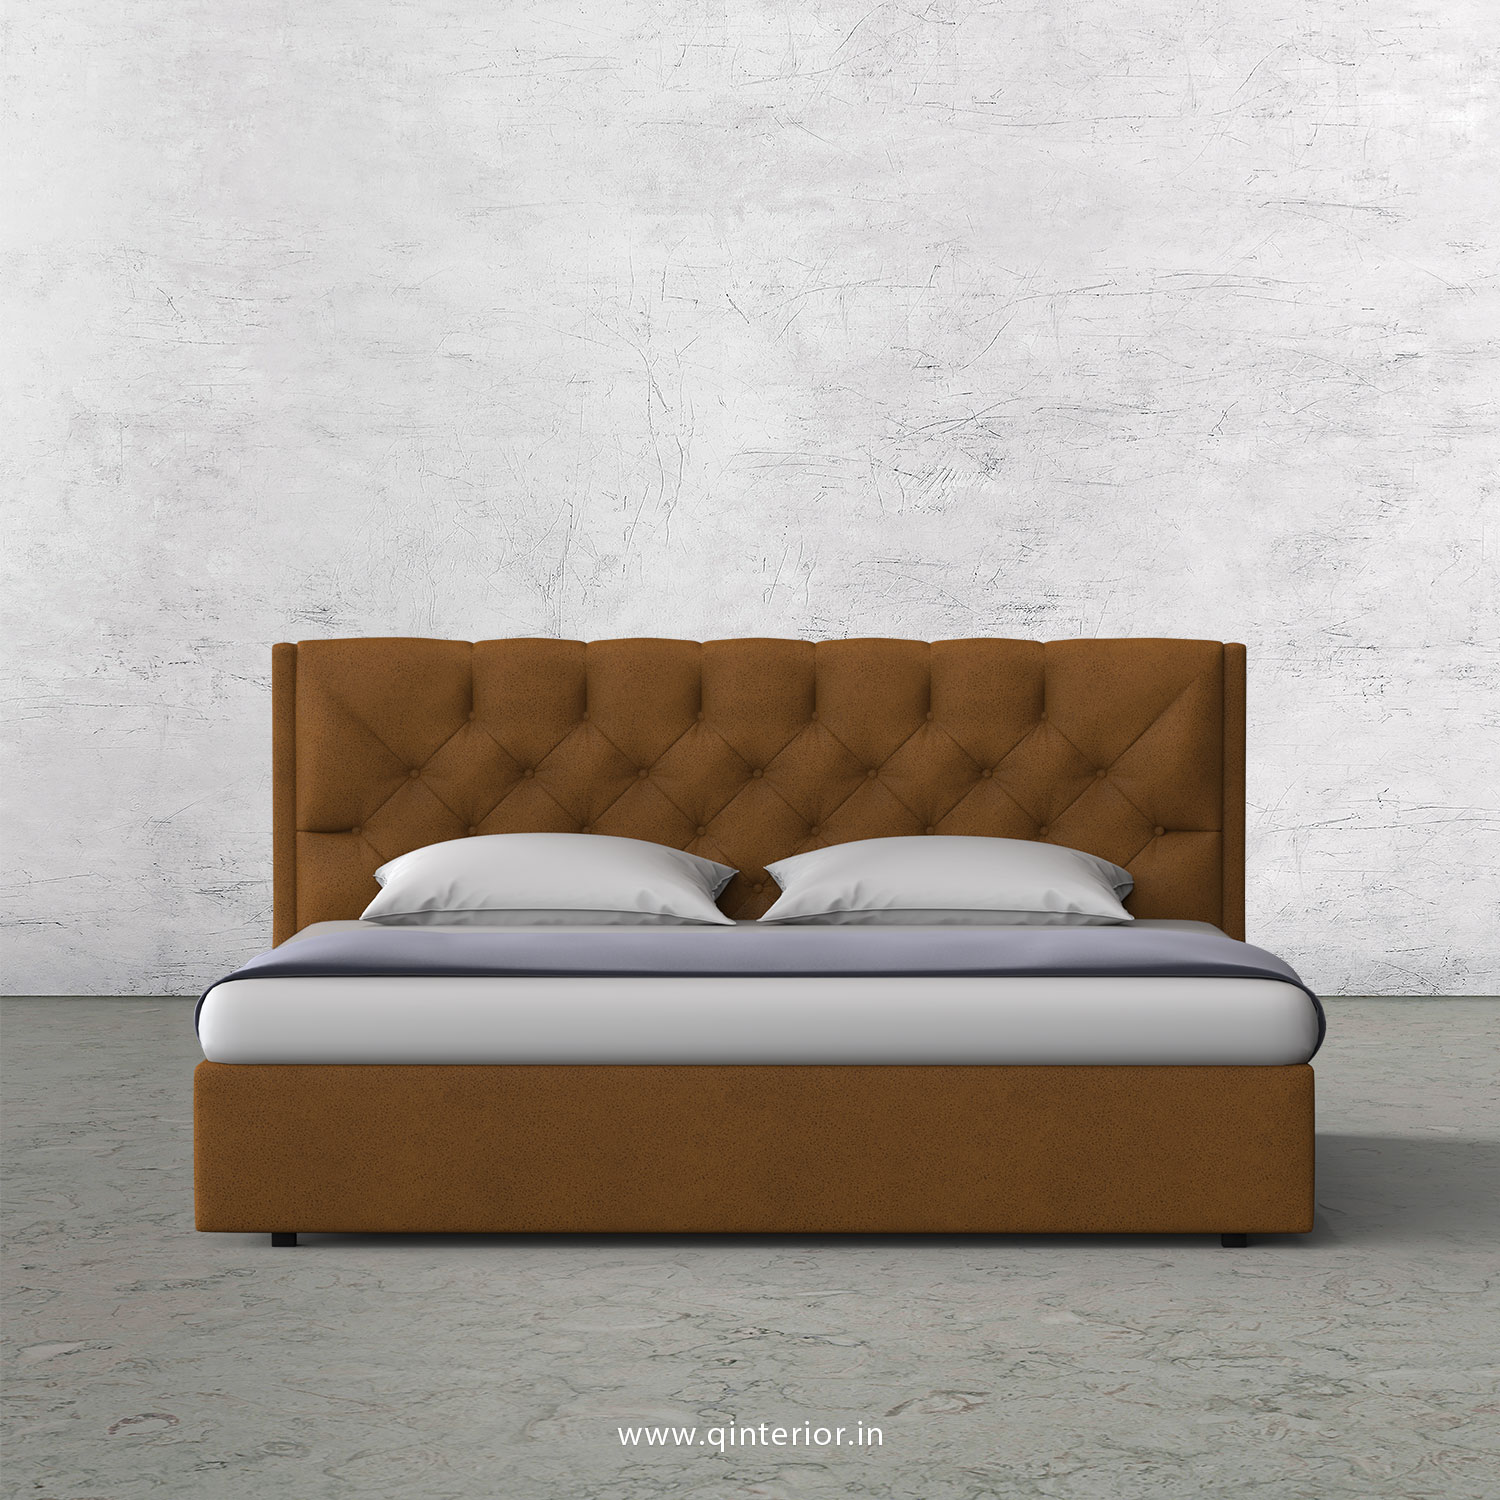 Scorpius Queen Bed in Fab Leather Fabric - QBD009 FL14